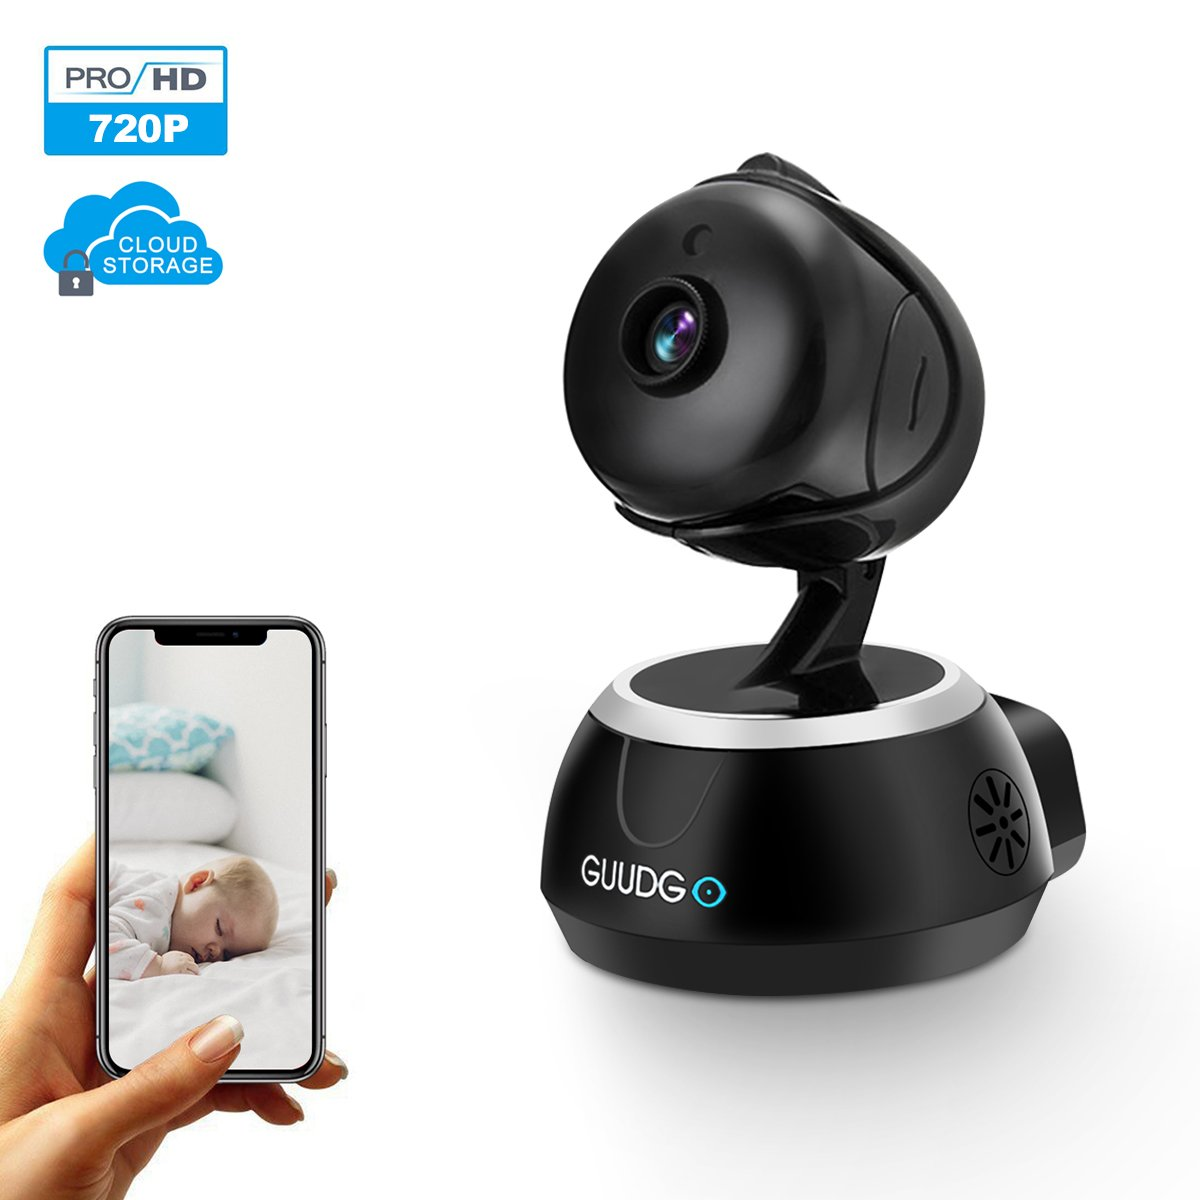 Home Security Camera, GUUDGO Home Security System 720P HD WiFi IP Camera, Indoor Wireless Dome Camera for Baby, Pet Monitoring Care, Motion Detection Alarm, iOS/Android Supported